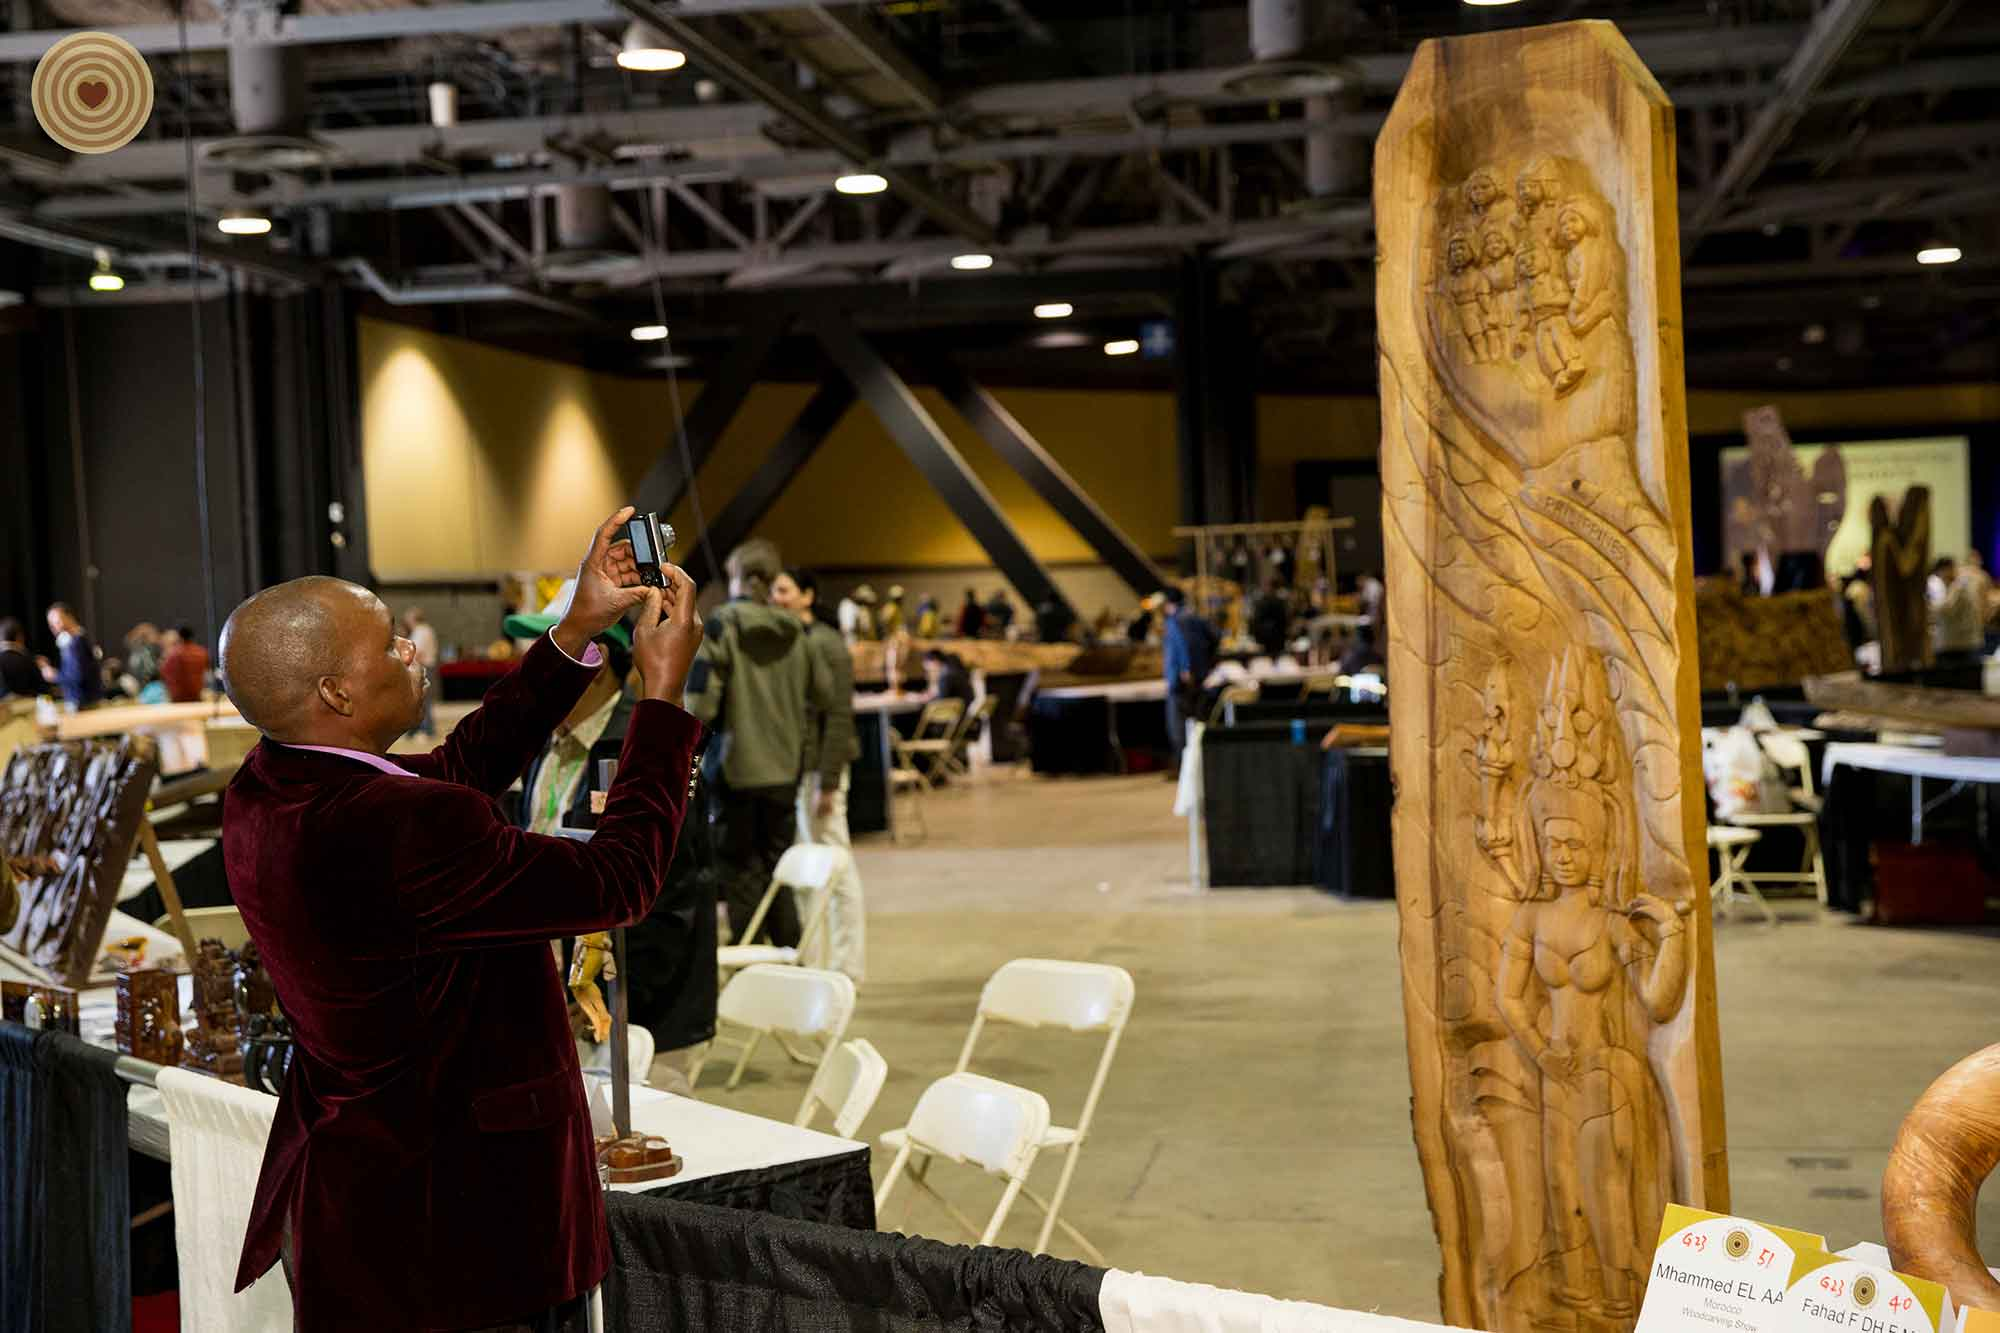 exhibition, wood carving